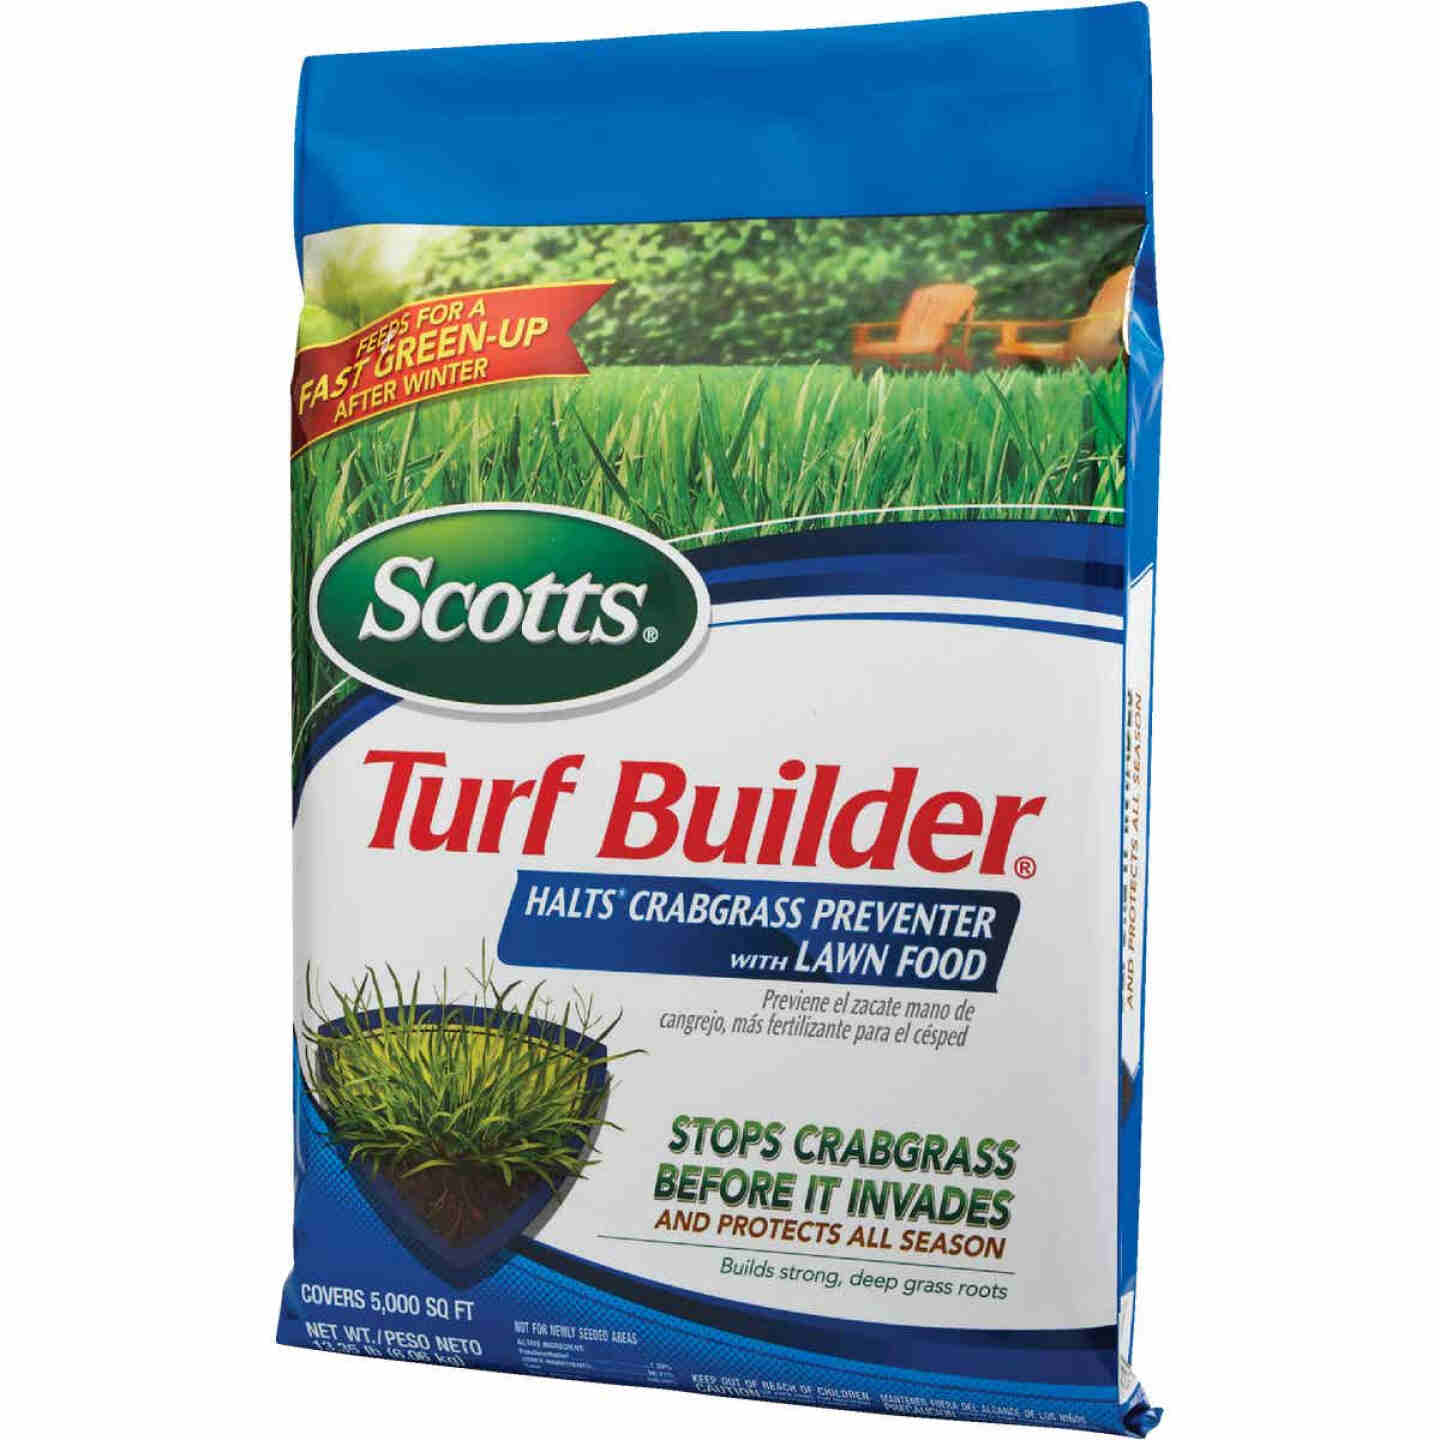 Scotts Turf Builder 13.35 Lb. 5000 Sq. Ft. 30-0-4 Lawn Fertilizer with Halts Crabgrass Preventer Image 5